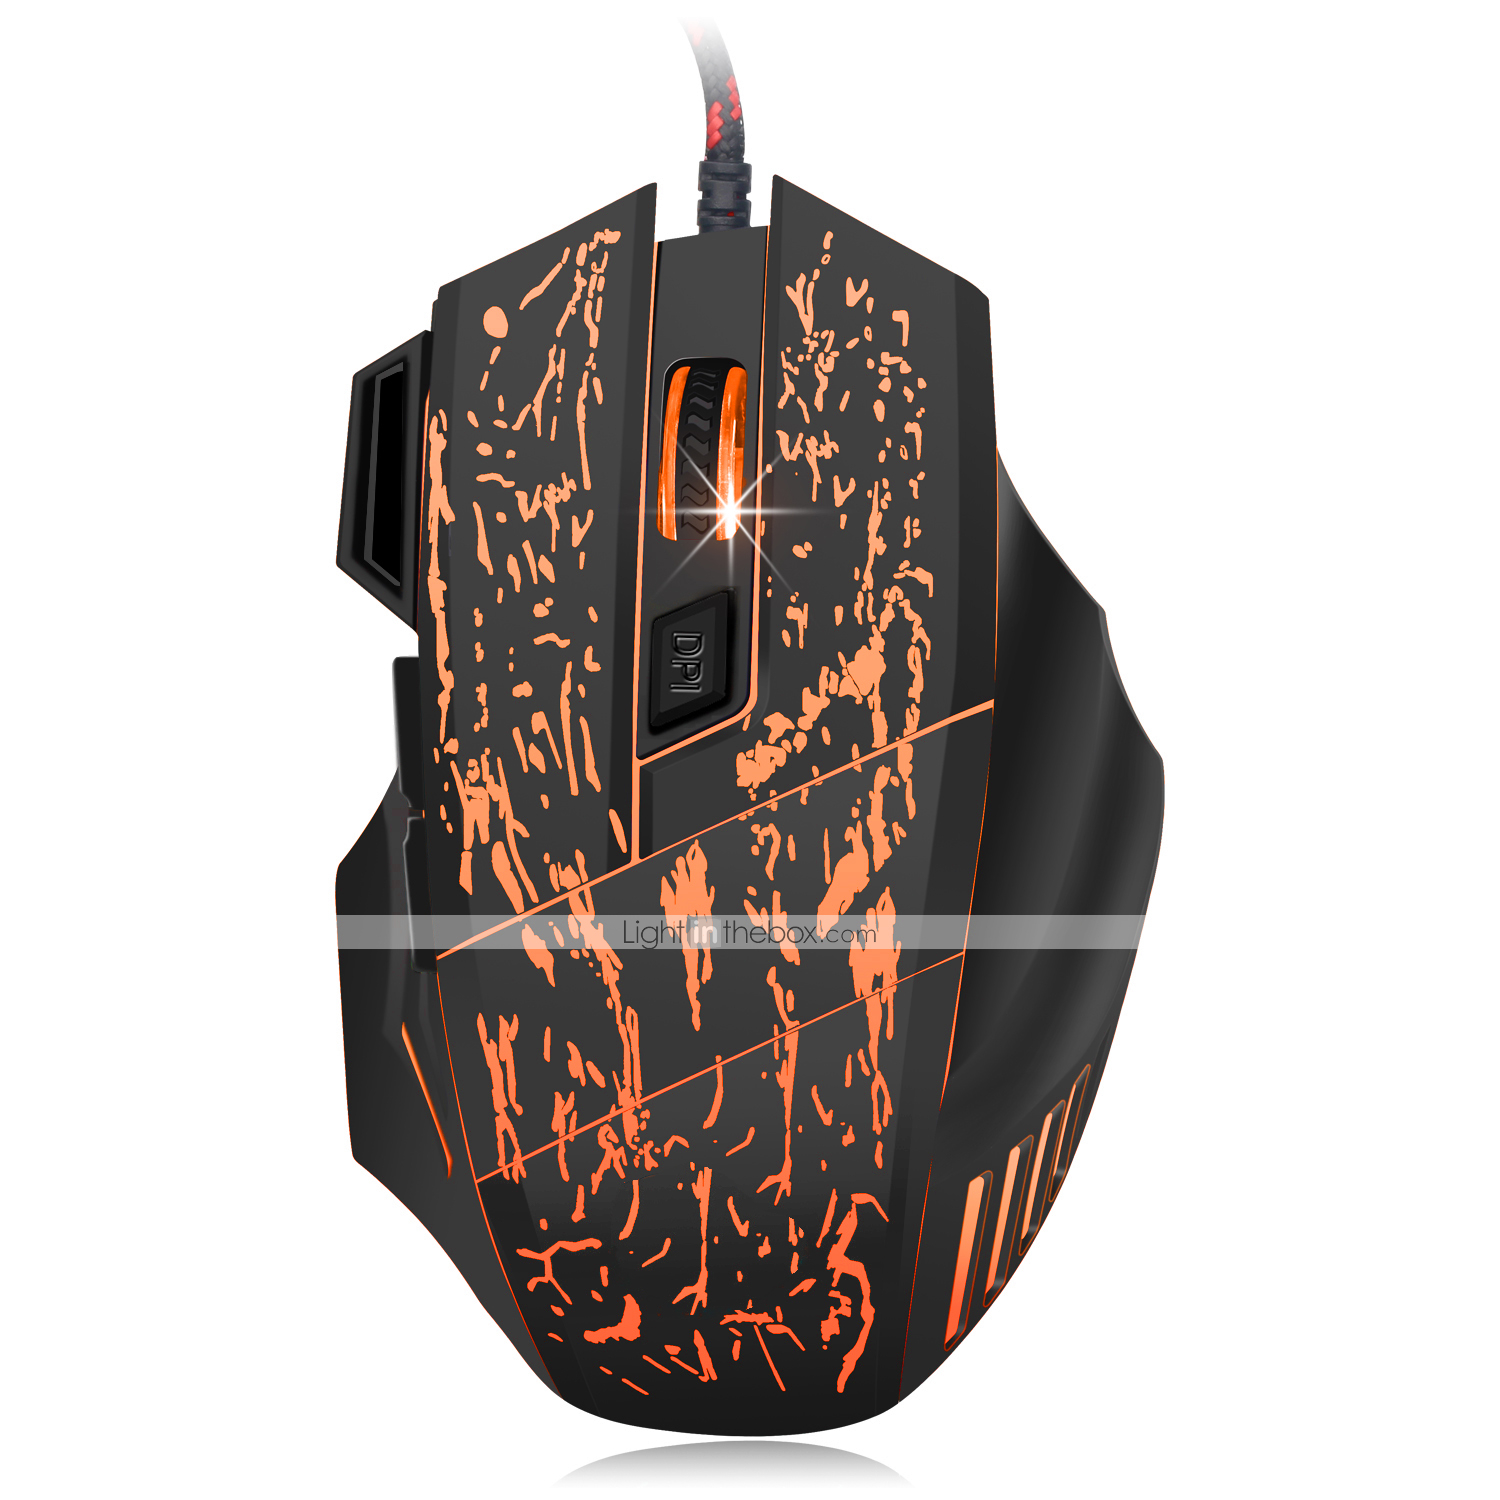 Gaming Mouse 6 Button USB Wired LED Breathing Fire Button 1800 DPI Laptop PC